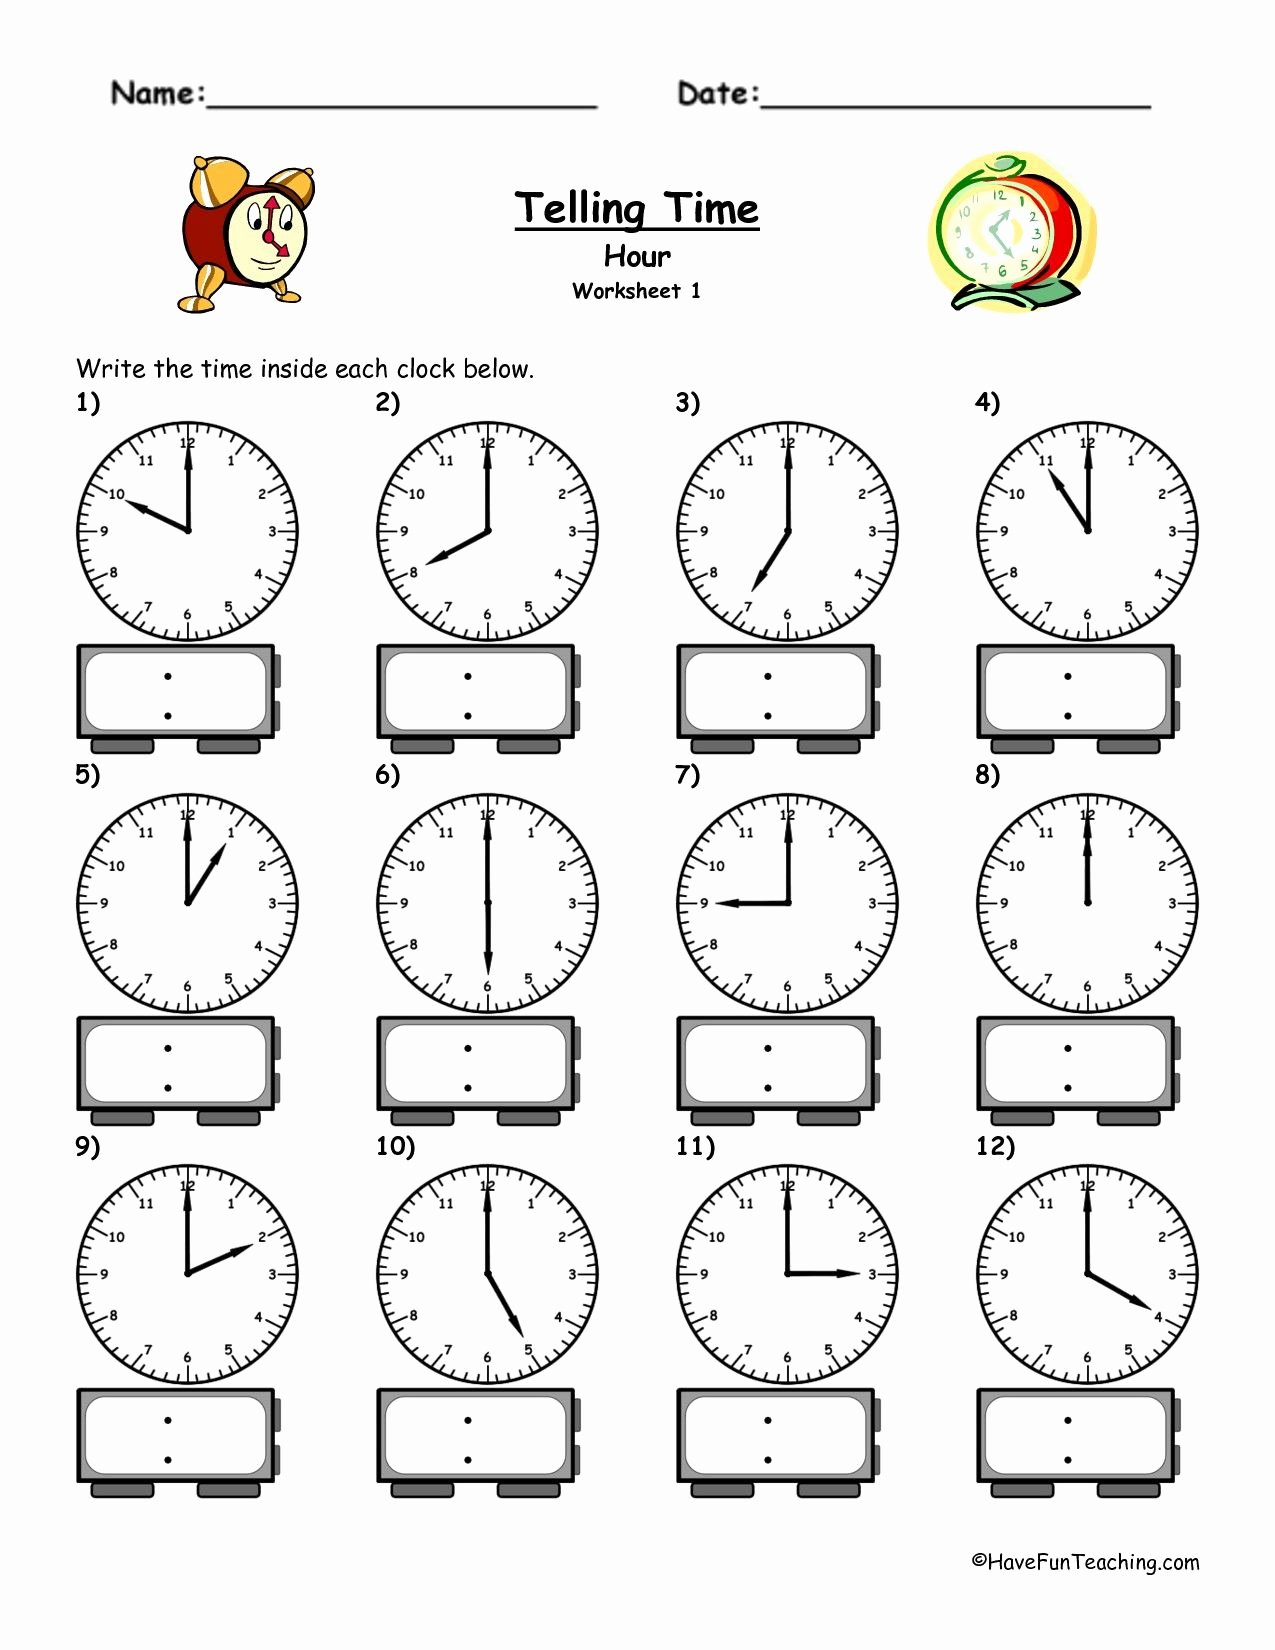 Time Worksheets for Preschoolers Free Image Result for Time Worksheet Preschool